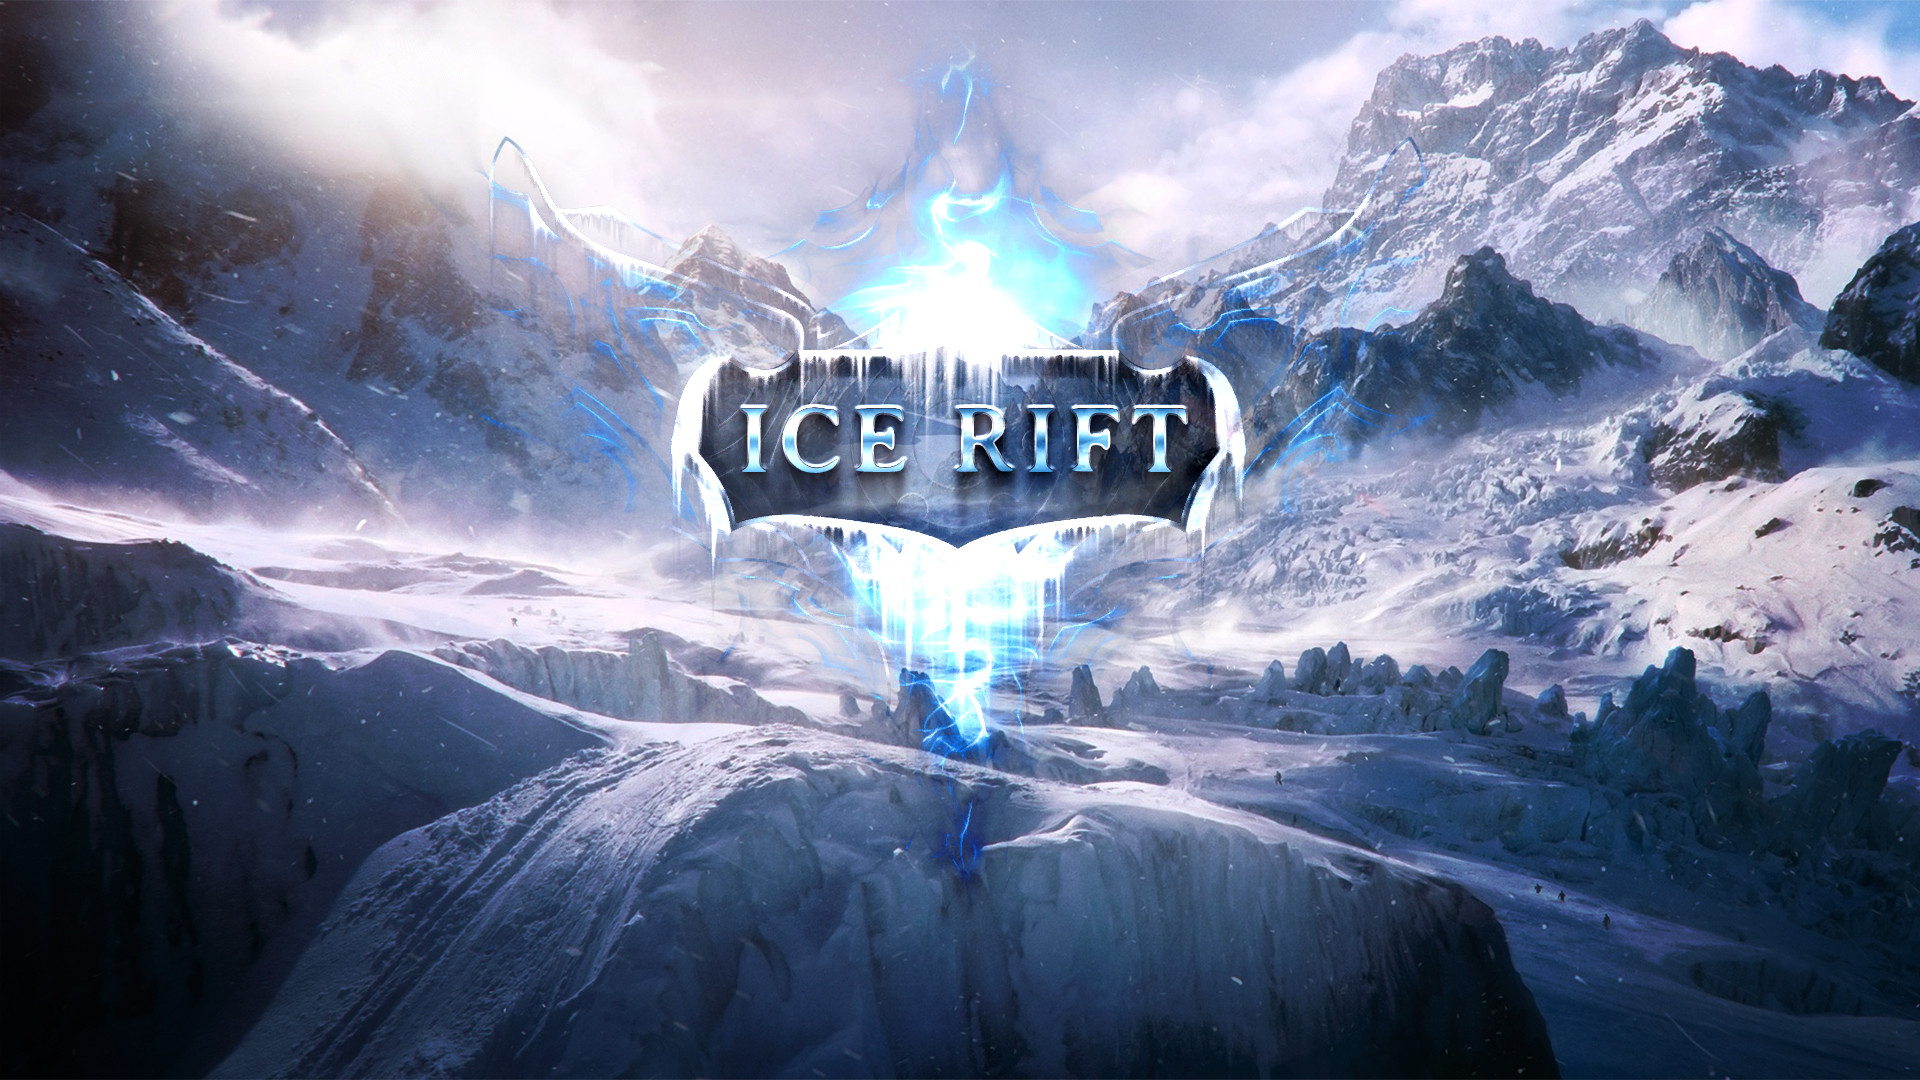 Res: 1920x1080, Ice Rift logo wallpaper by Dexistor371 Ice Rift logo wallpaper by  Dexistor371